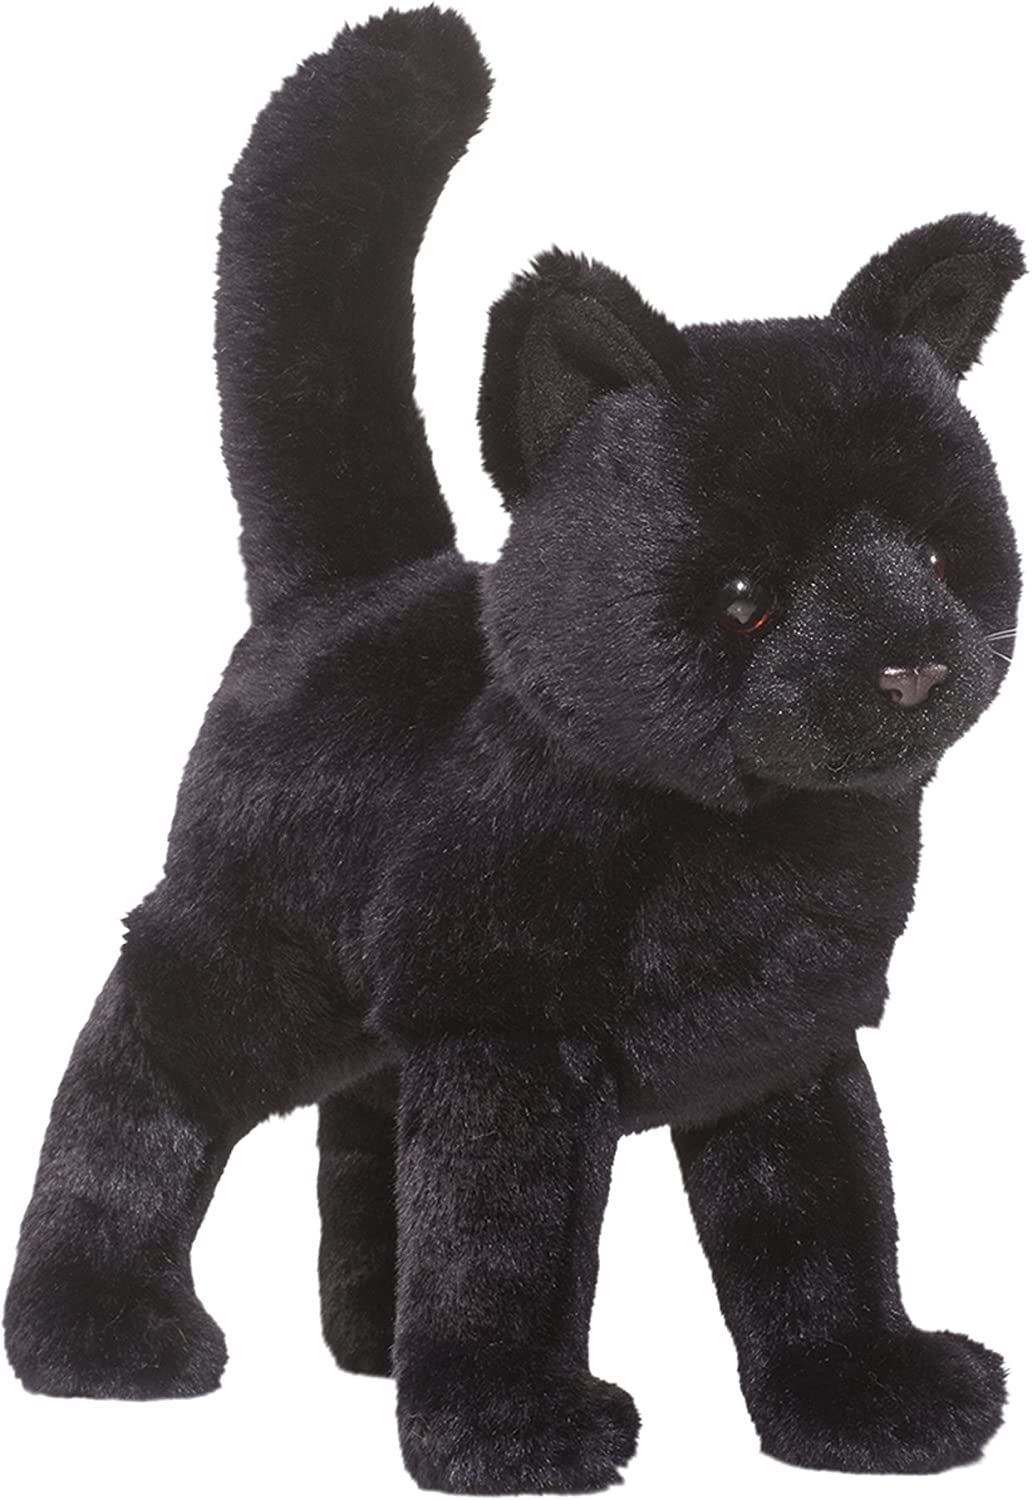 kitty plush toy for sale